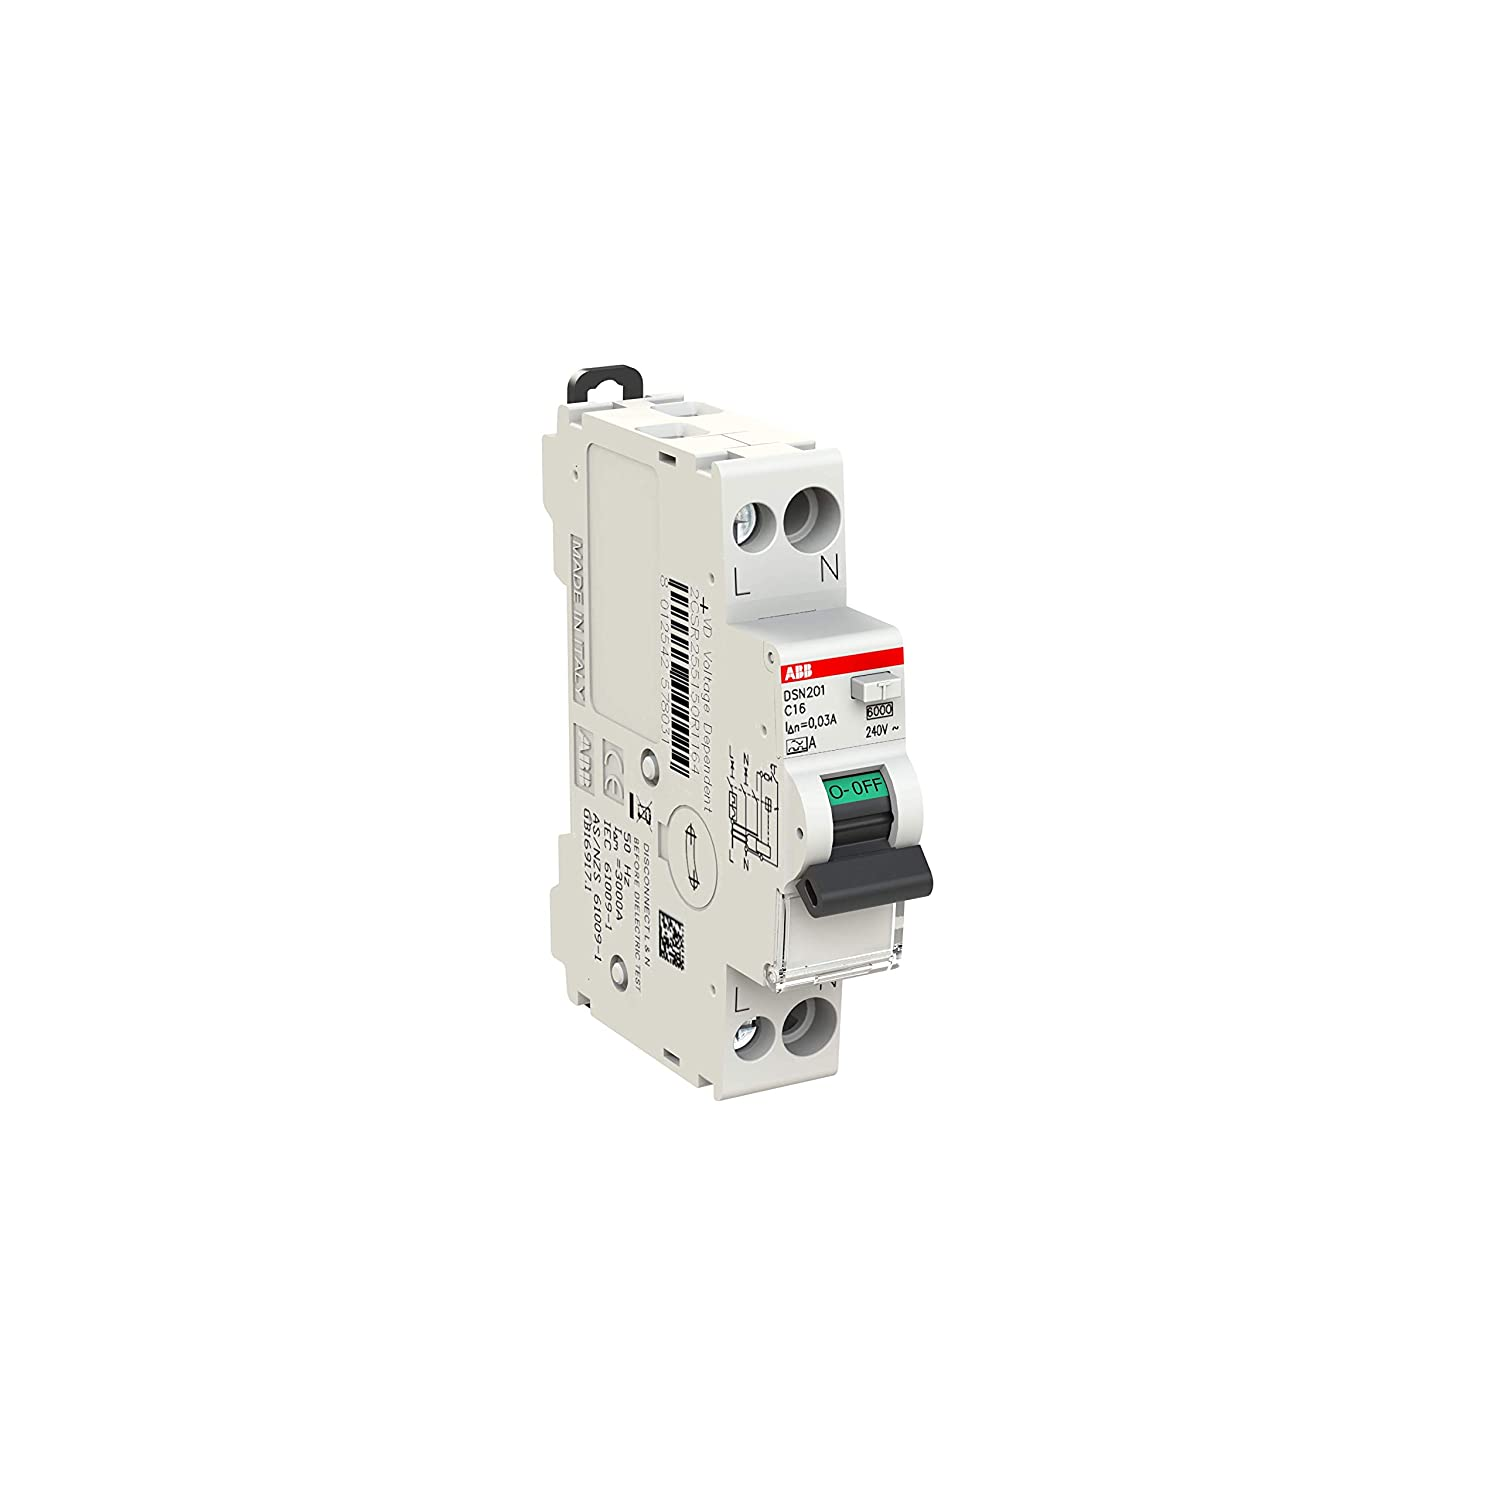 RCBO ABB2CSR255150R1164 ABB DSN201 A-C16//0.03 Residual current circuit breaker with overcurrent protection